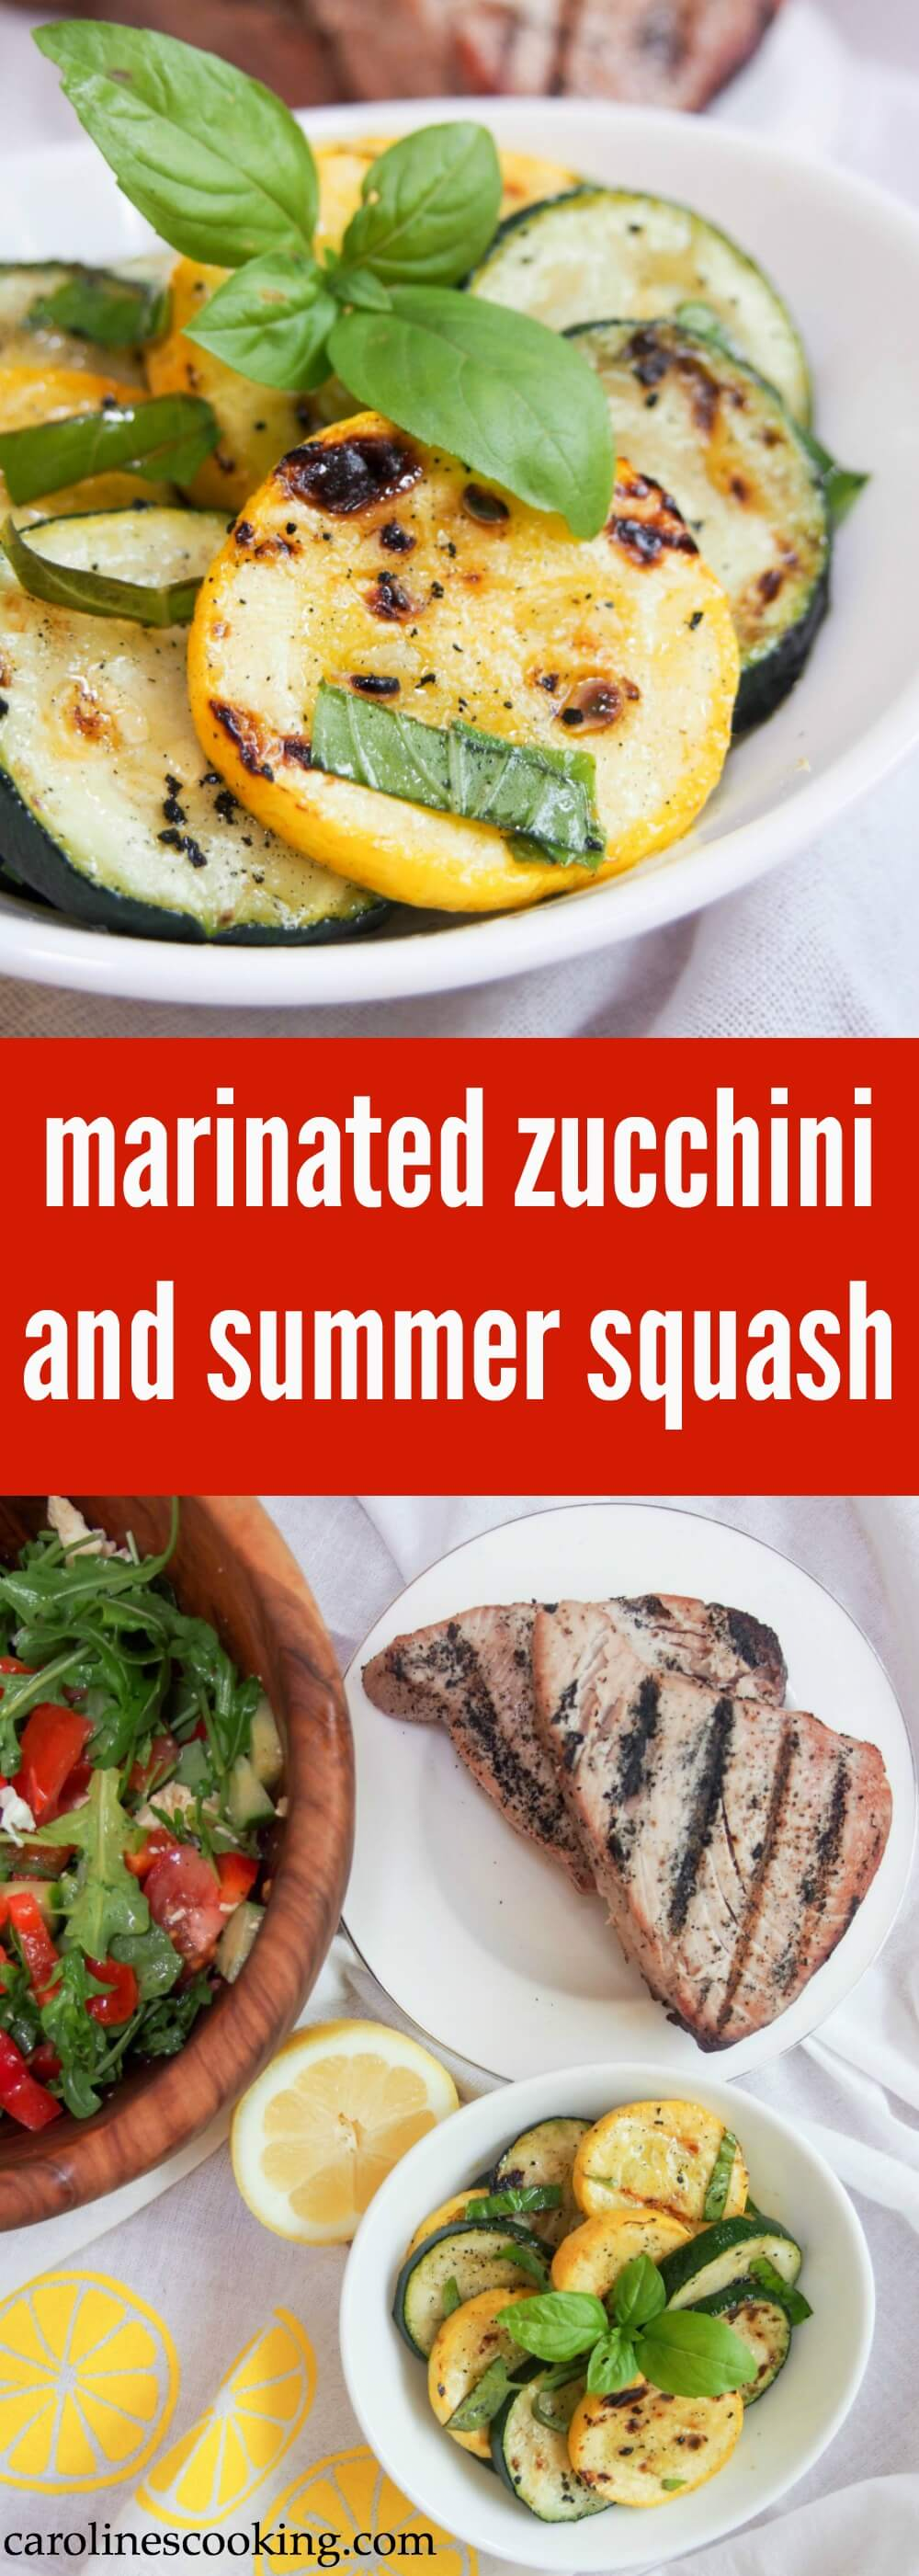 Whether you eat them straight away, or pack them for a picnic, these lemon and basil marinated zucchini and summer squash make a delicious, easy side dish. Full of fresh, summery flavors.